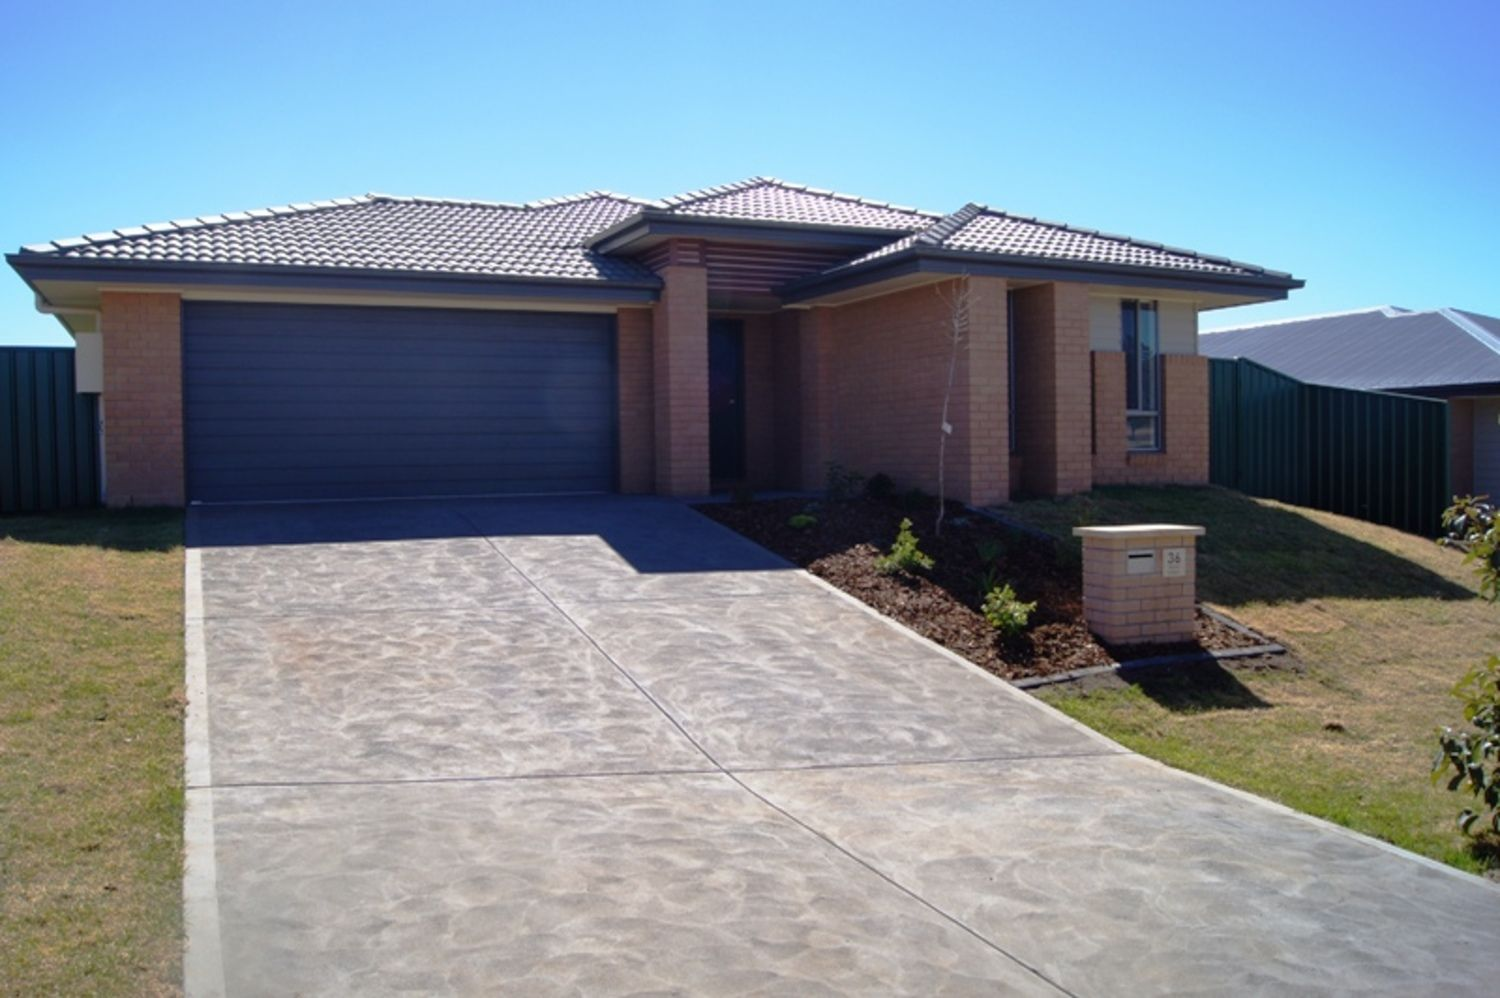 36 Jeans Street, Muswellbrook NSW 2333, Image 0